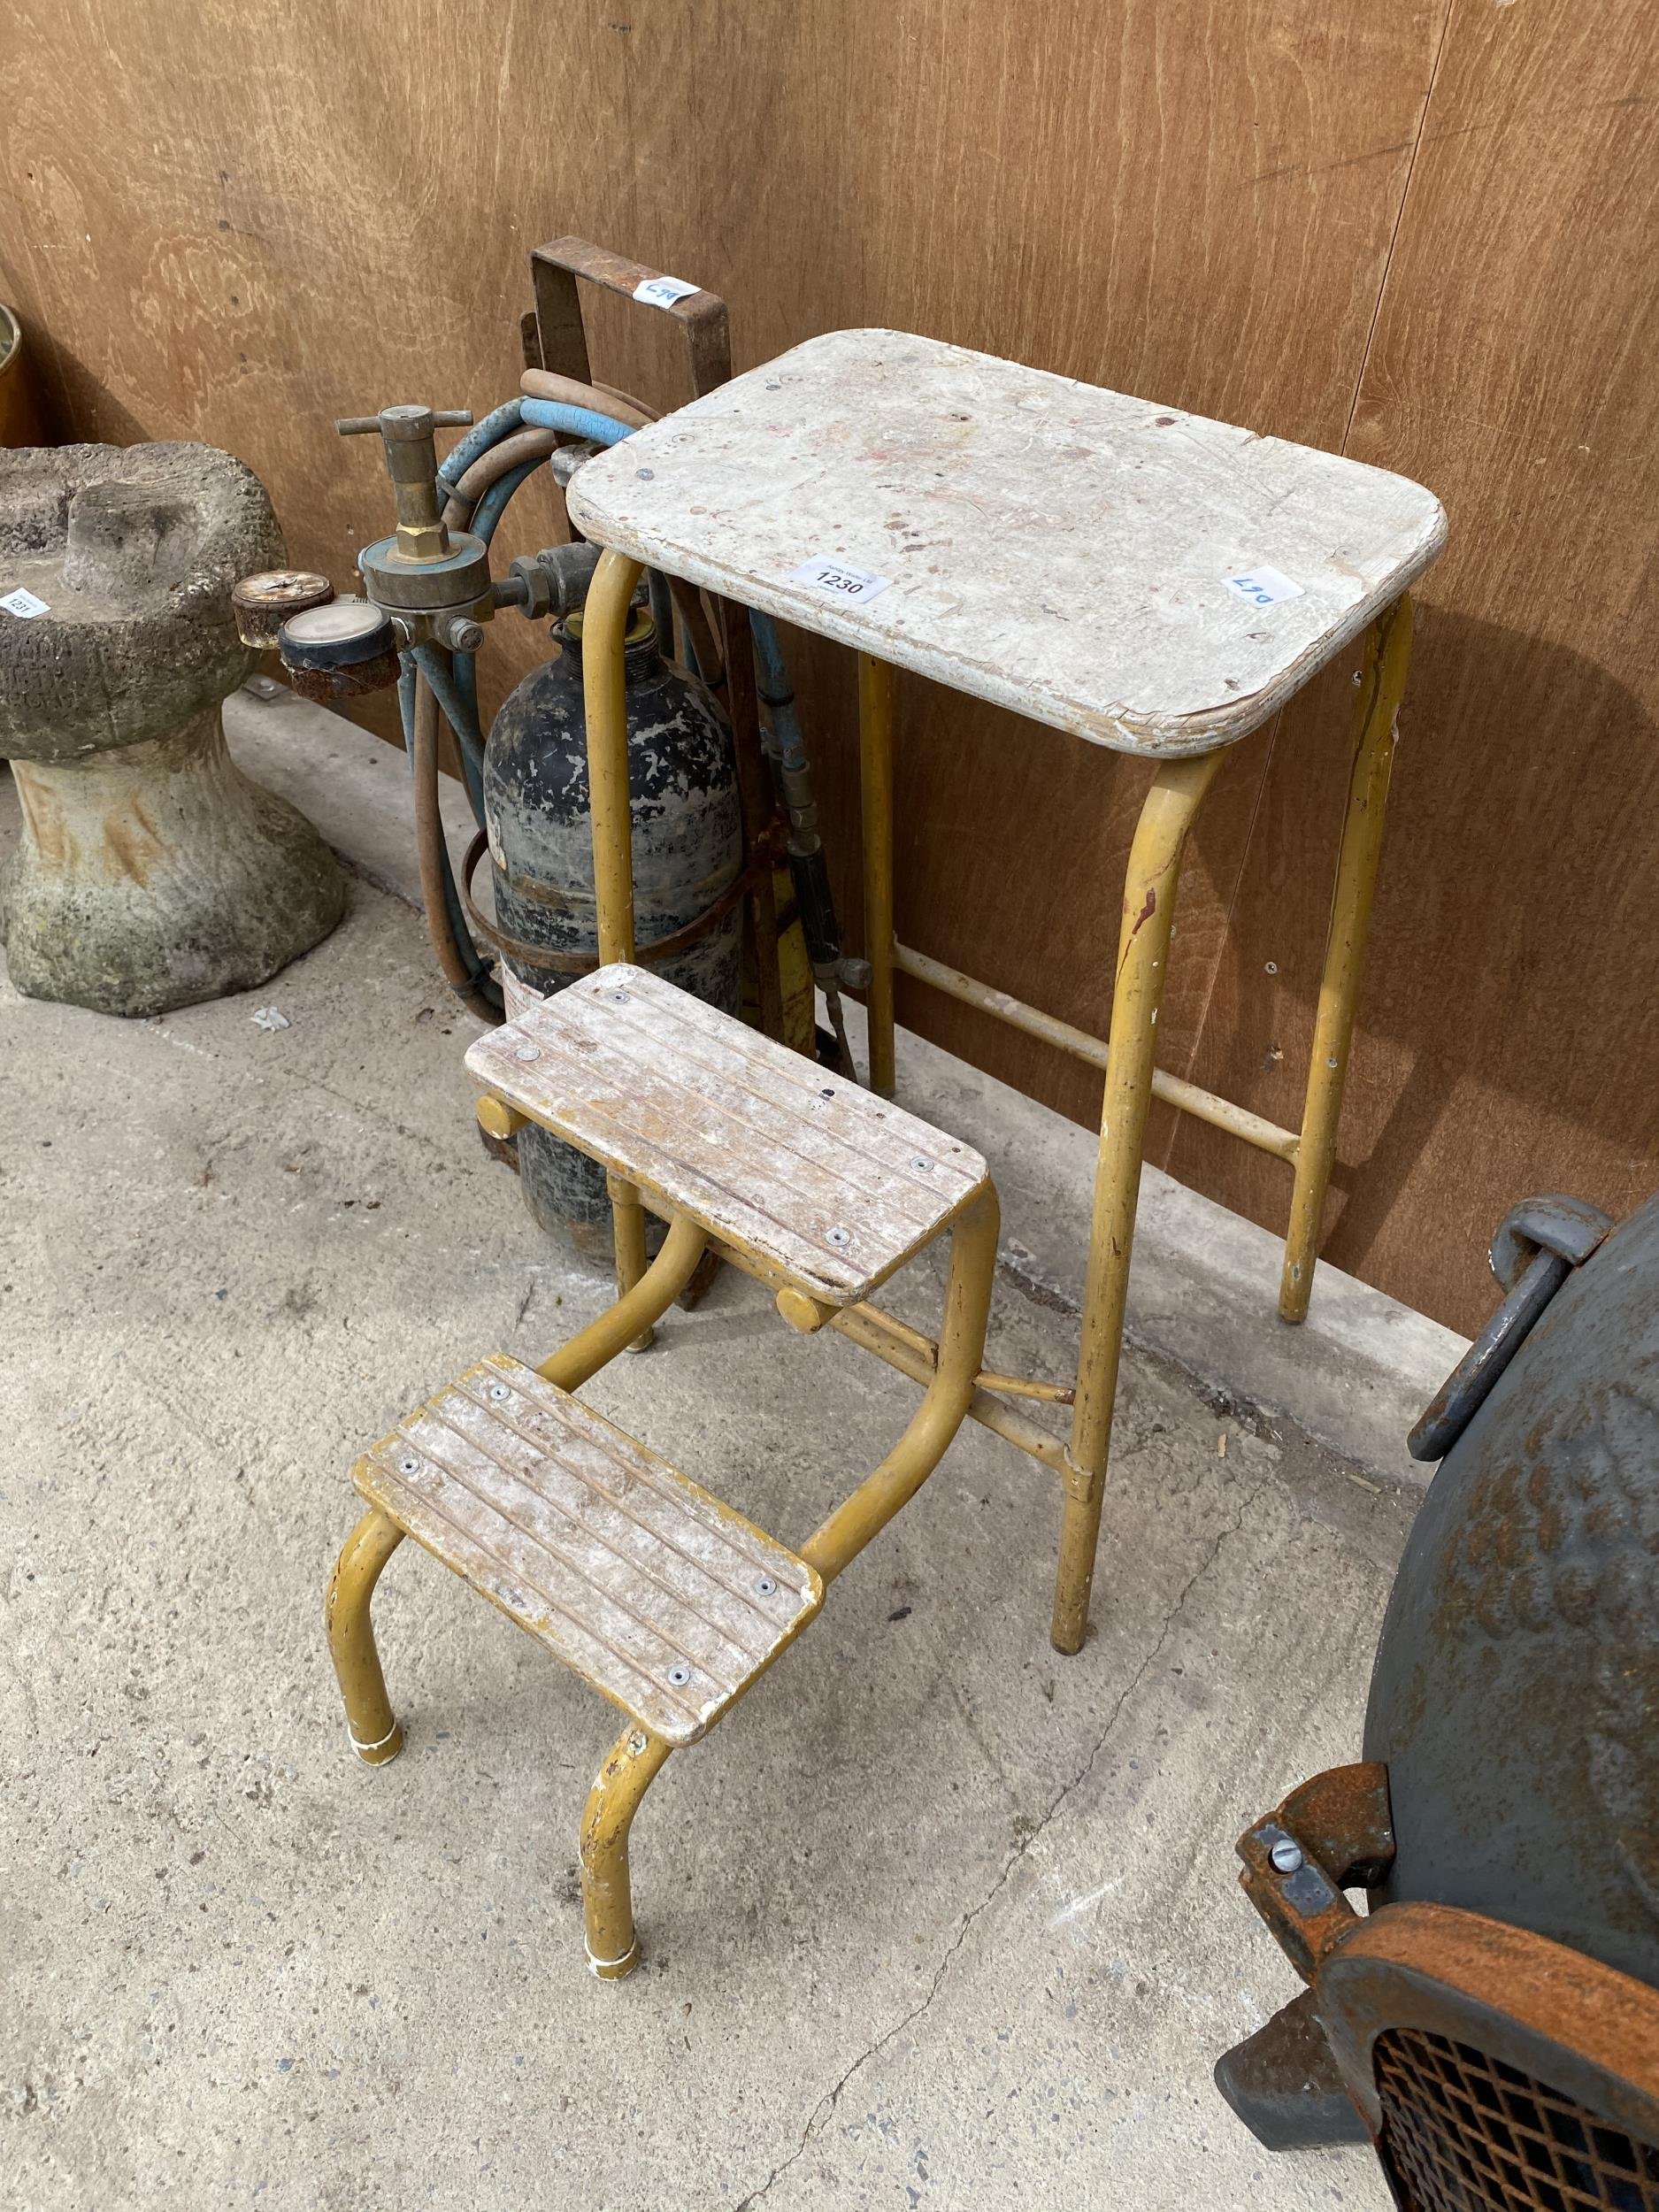 A VINTAGE KITCHEN STEP AND A GAS CUTTING BOTTLE - Image 2 of 4